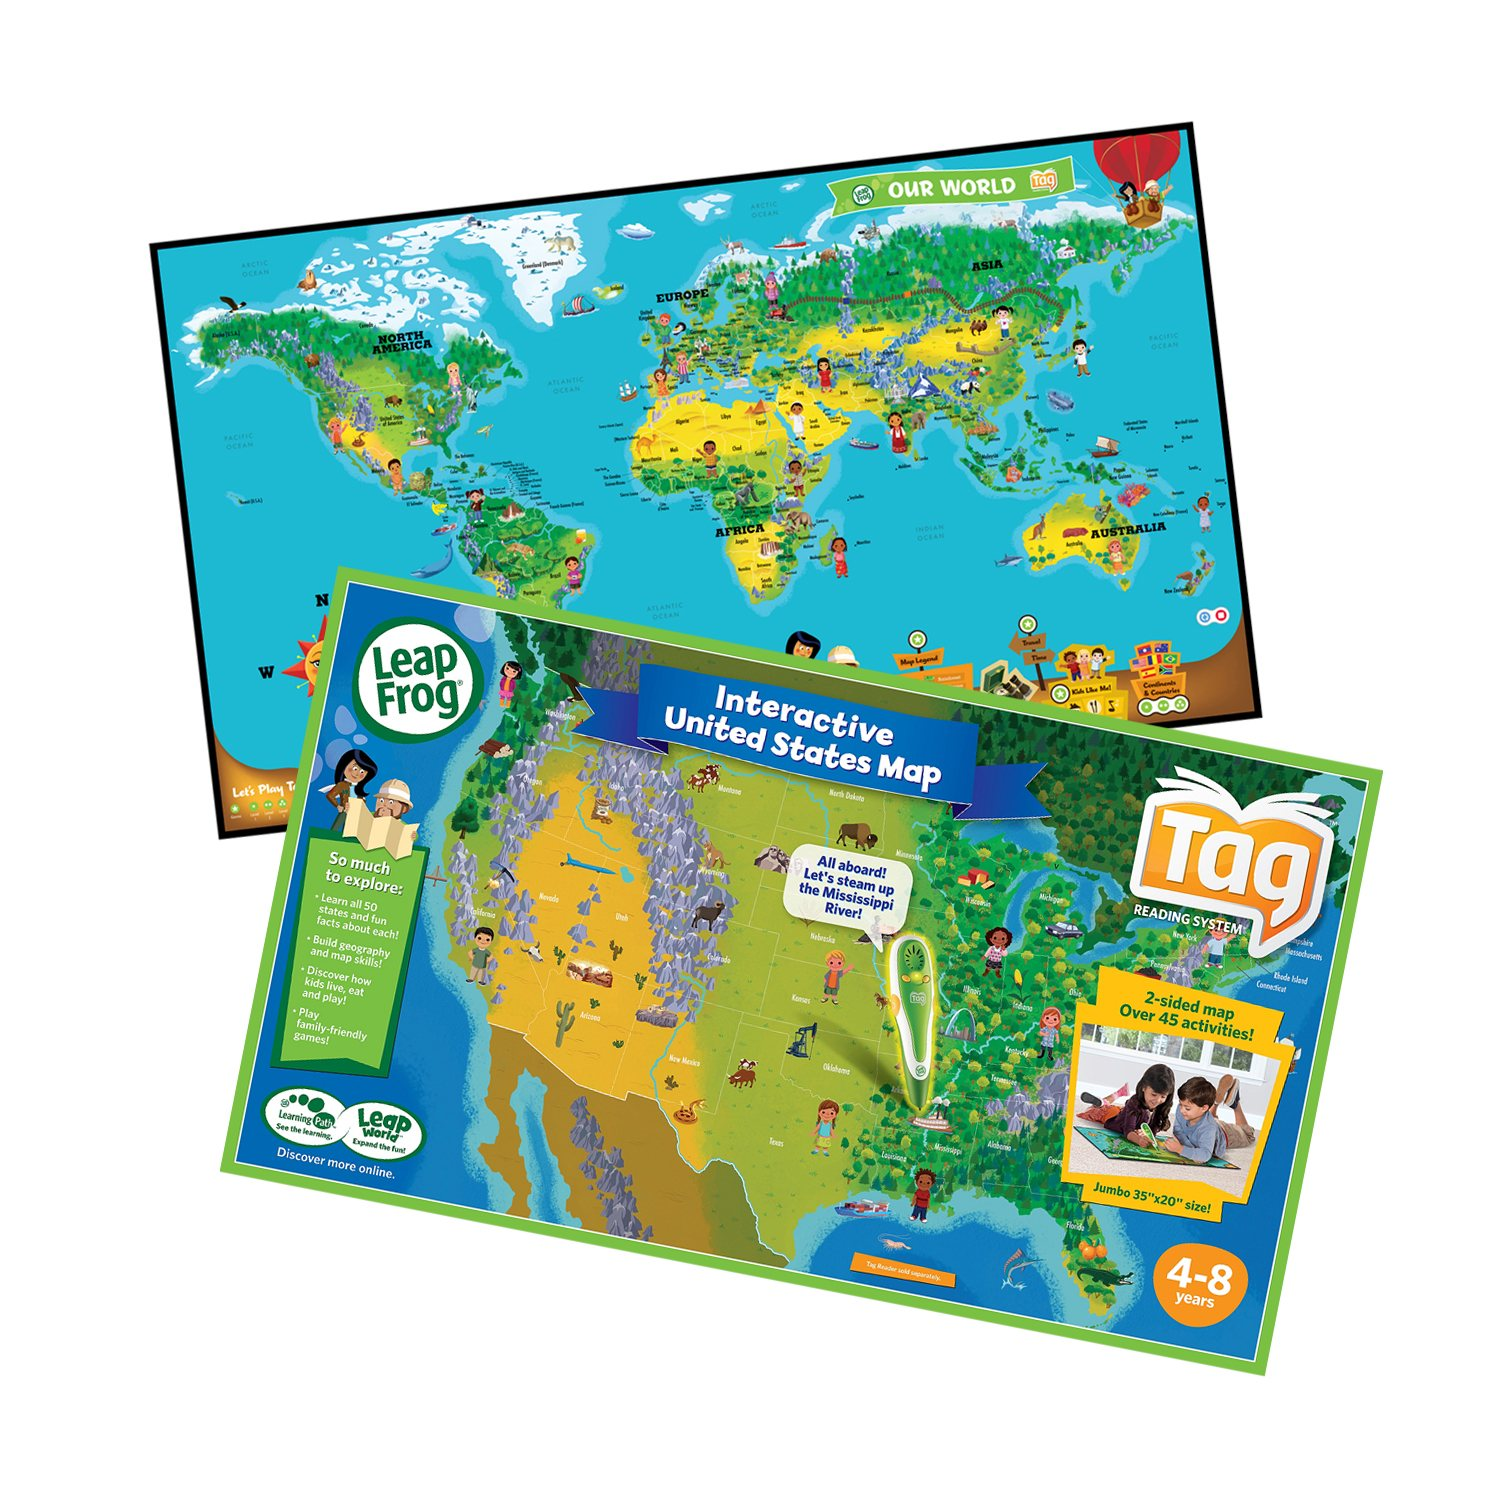 Leapfrog Interactive World Map.Leapfrog Tag Interactive Maps Bundle Sam S Club